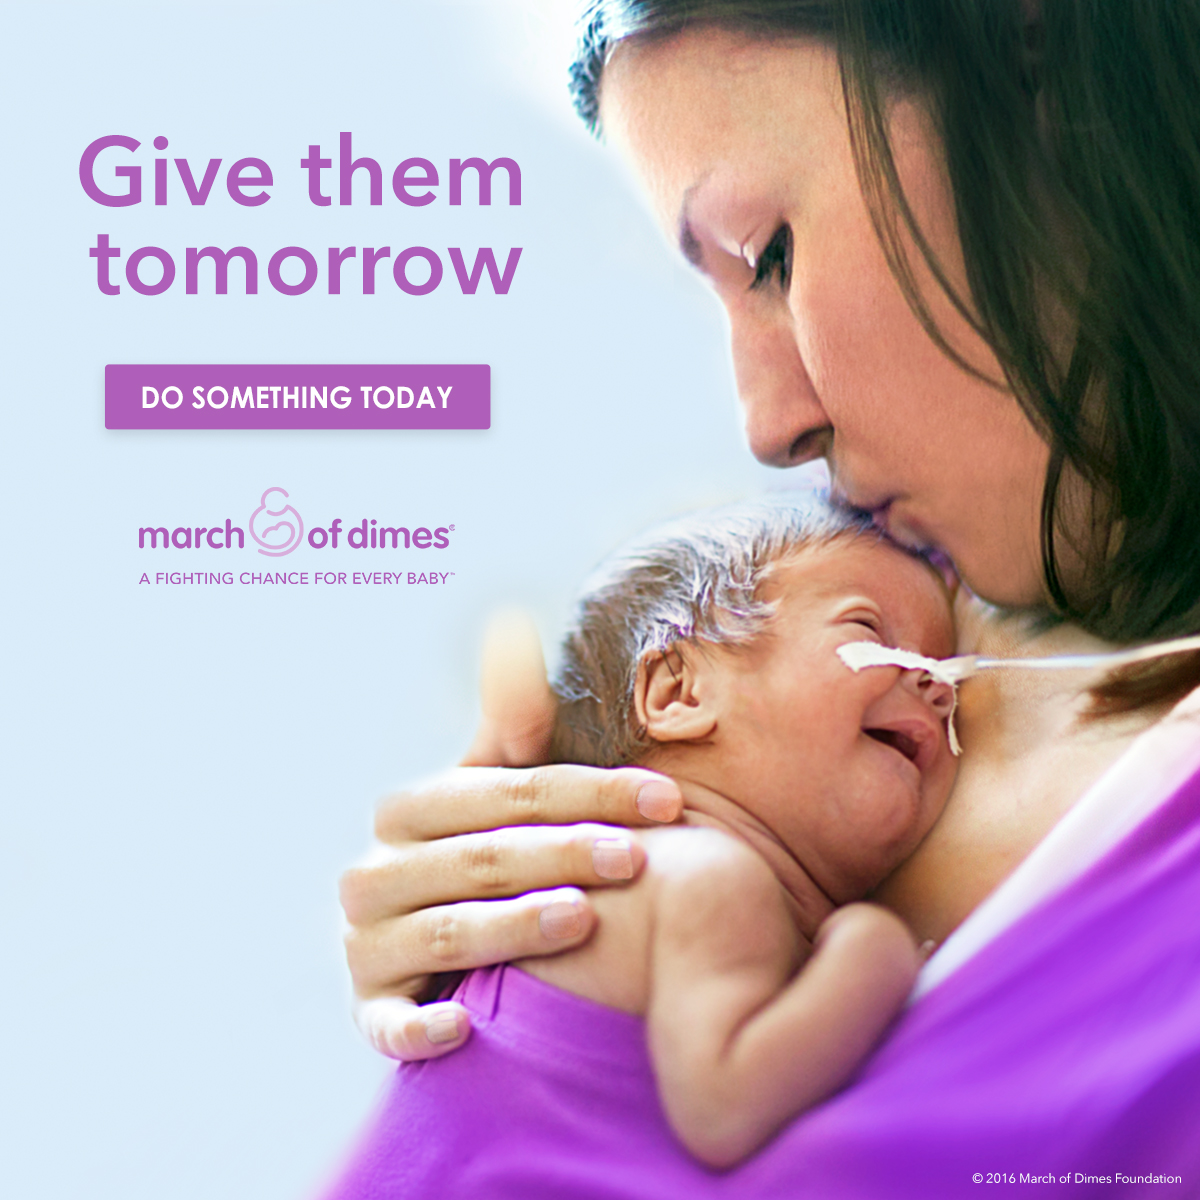 March of dimes launches new campaign to fight birth defects and give them tomorrow helps moms and babies nationwide voltagebd Choice Image